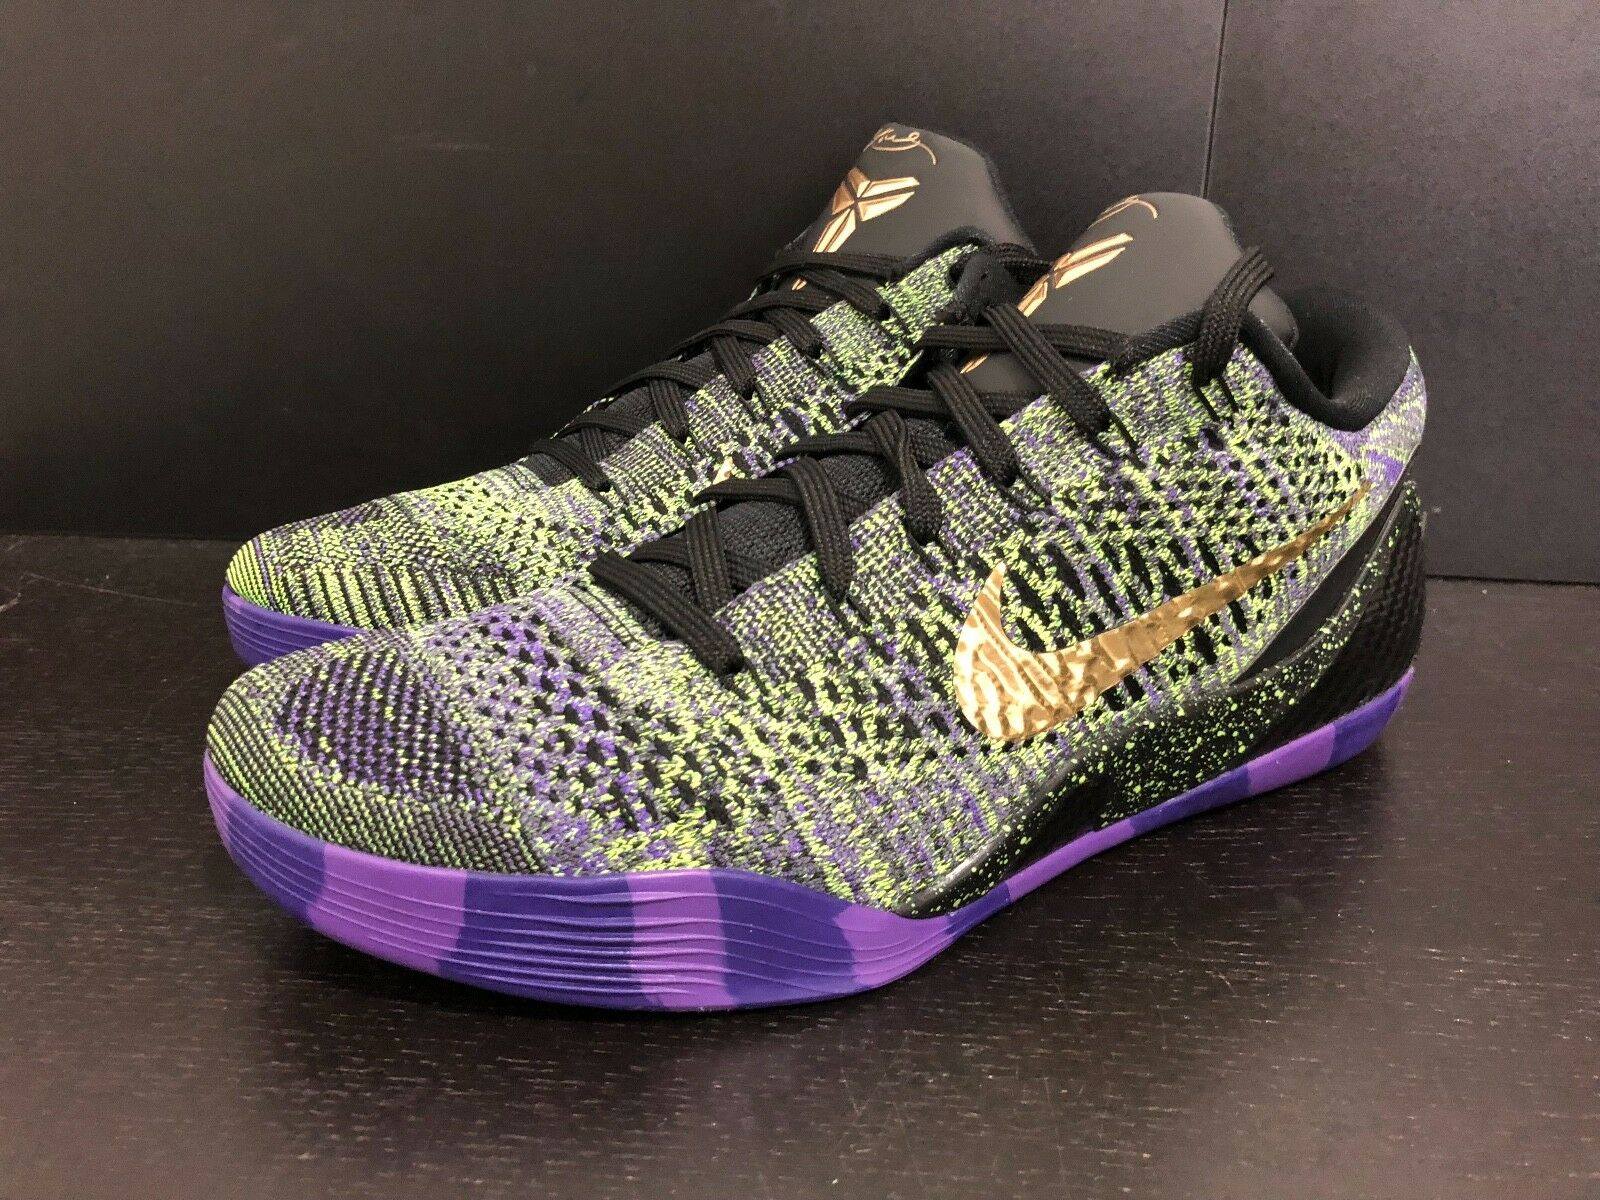 NIKE KOBE 9 ELITE LOW QS ID - MAMBA MOMENT - SIZE 11 - LAKERS - BRYANT